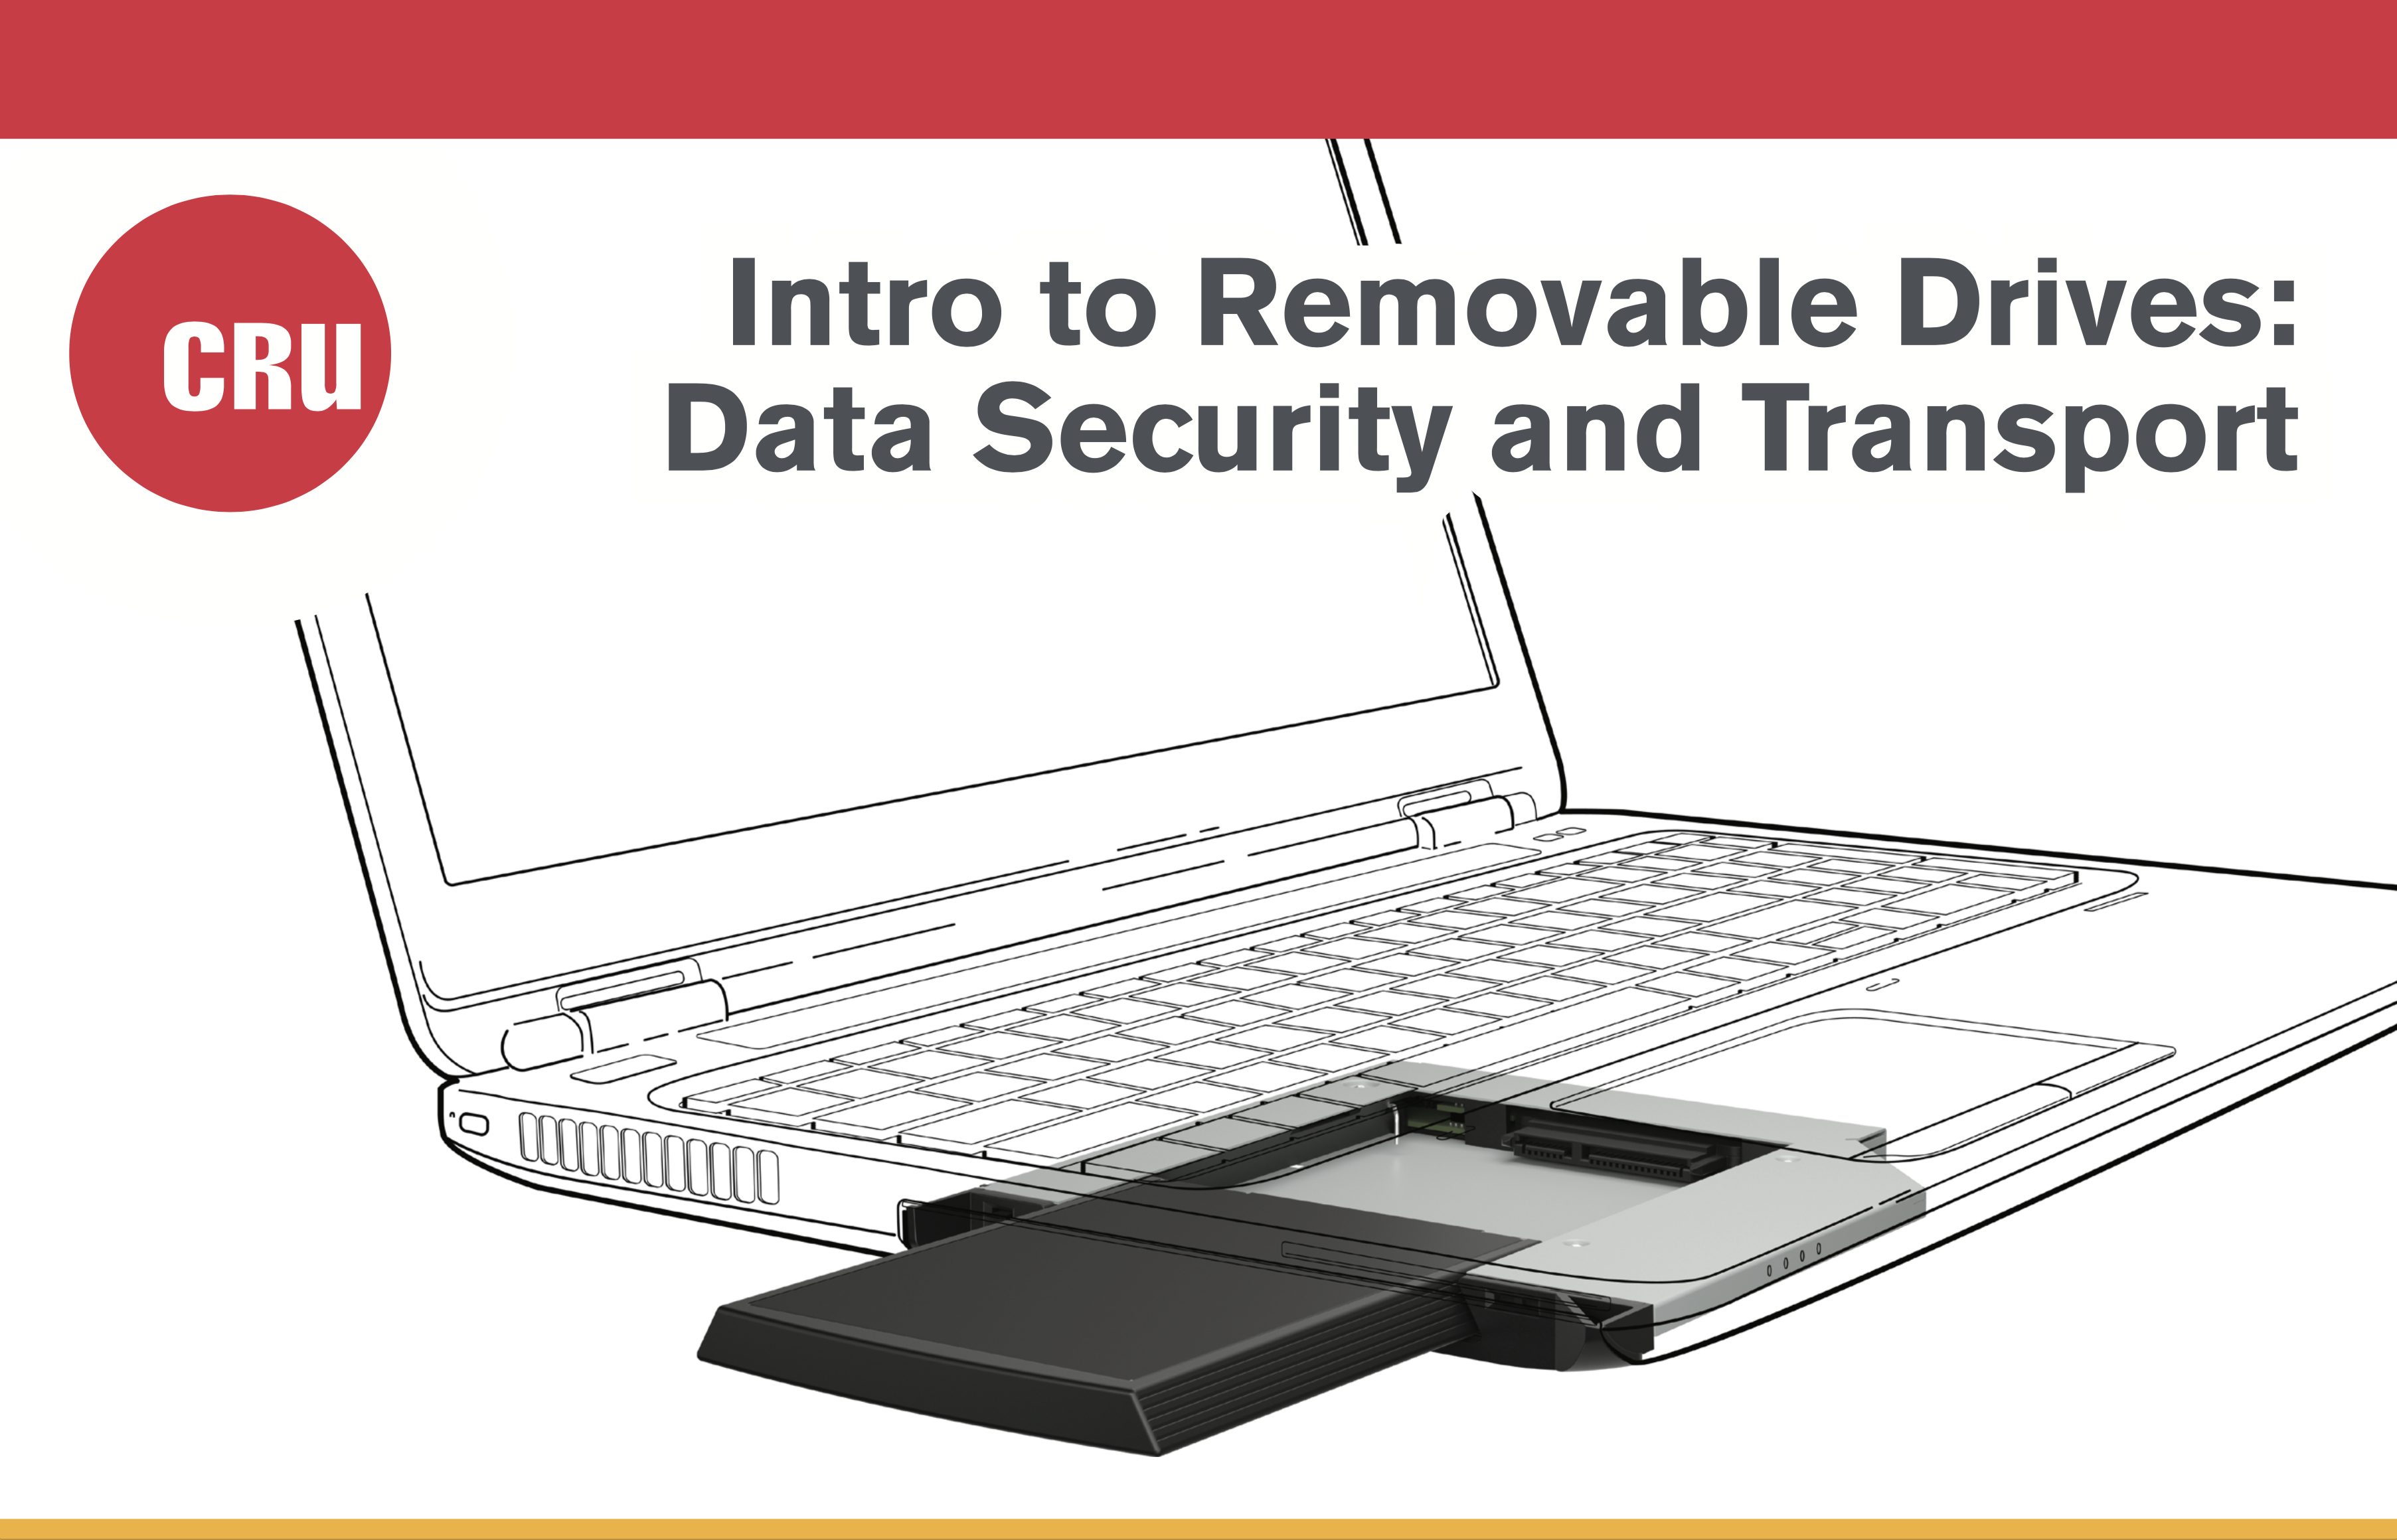 Intro-to-Removable-Drives-ebook.png